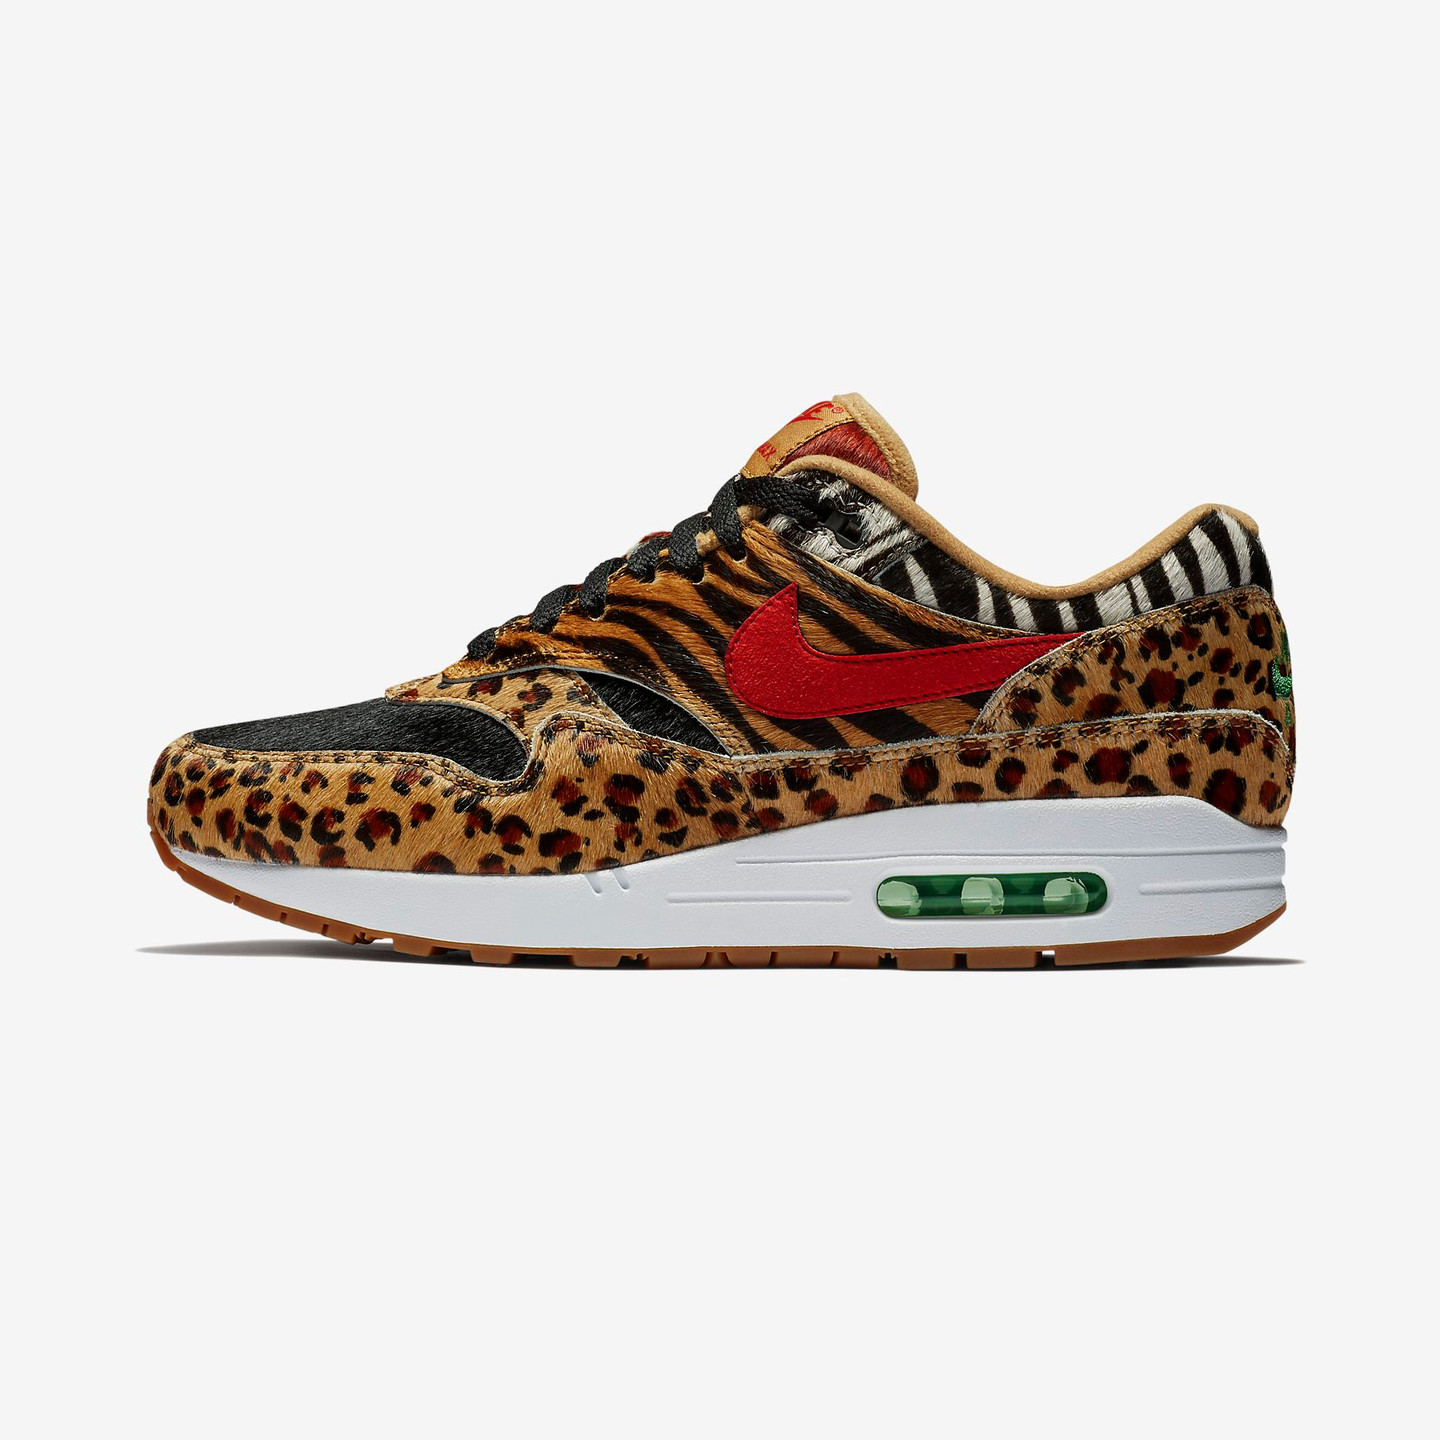 Nike Air Max 1 DLX 'Atmos Animal' Wheat / Bison / Classic Green / Sport Red AQ0928-700